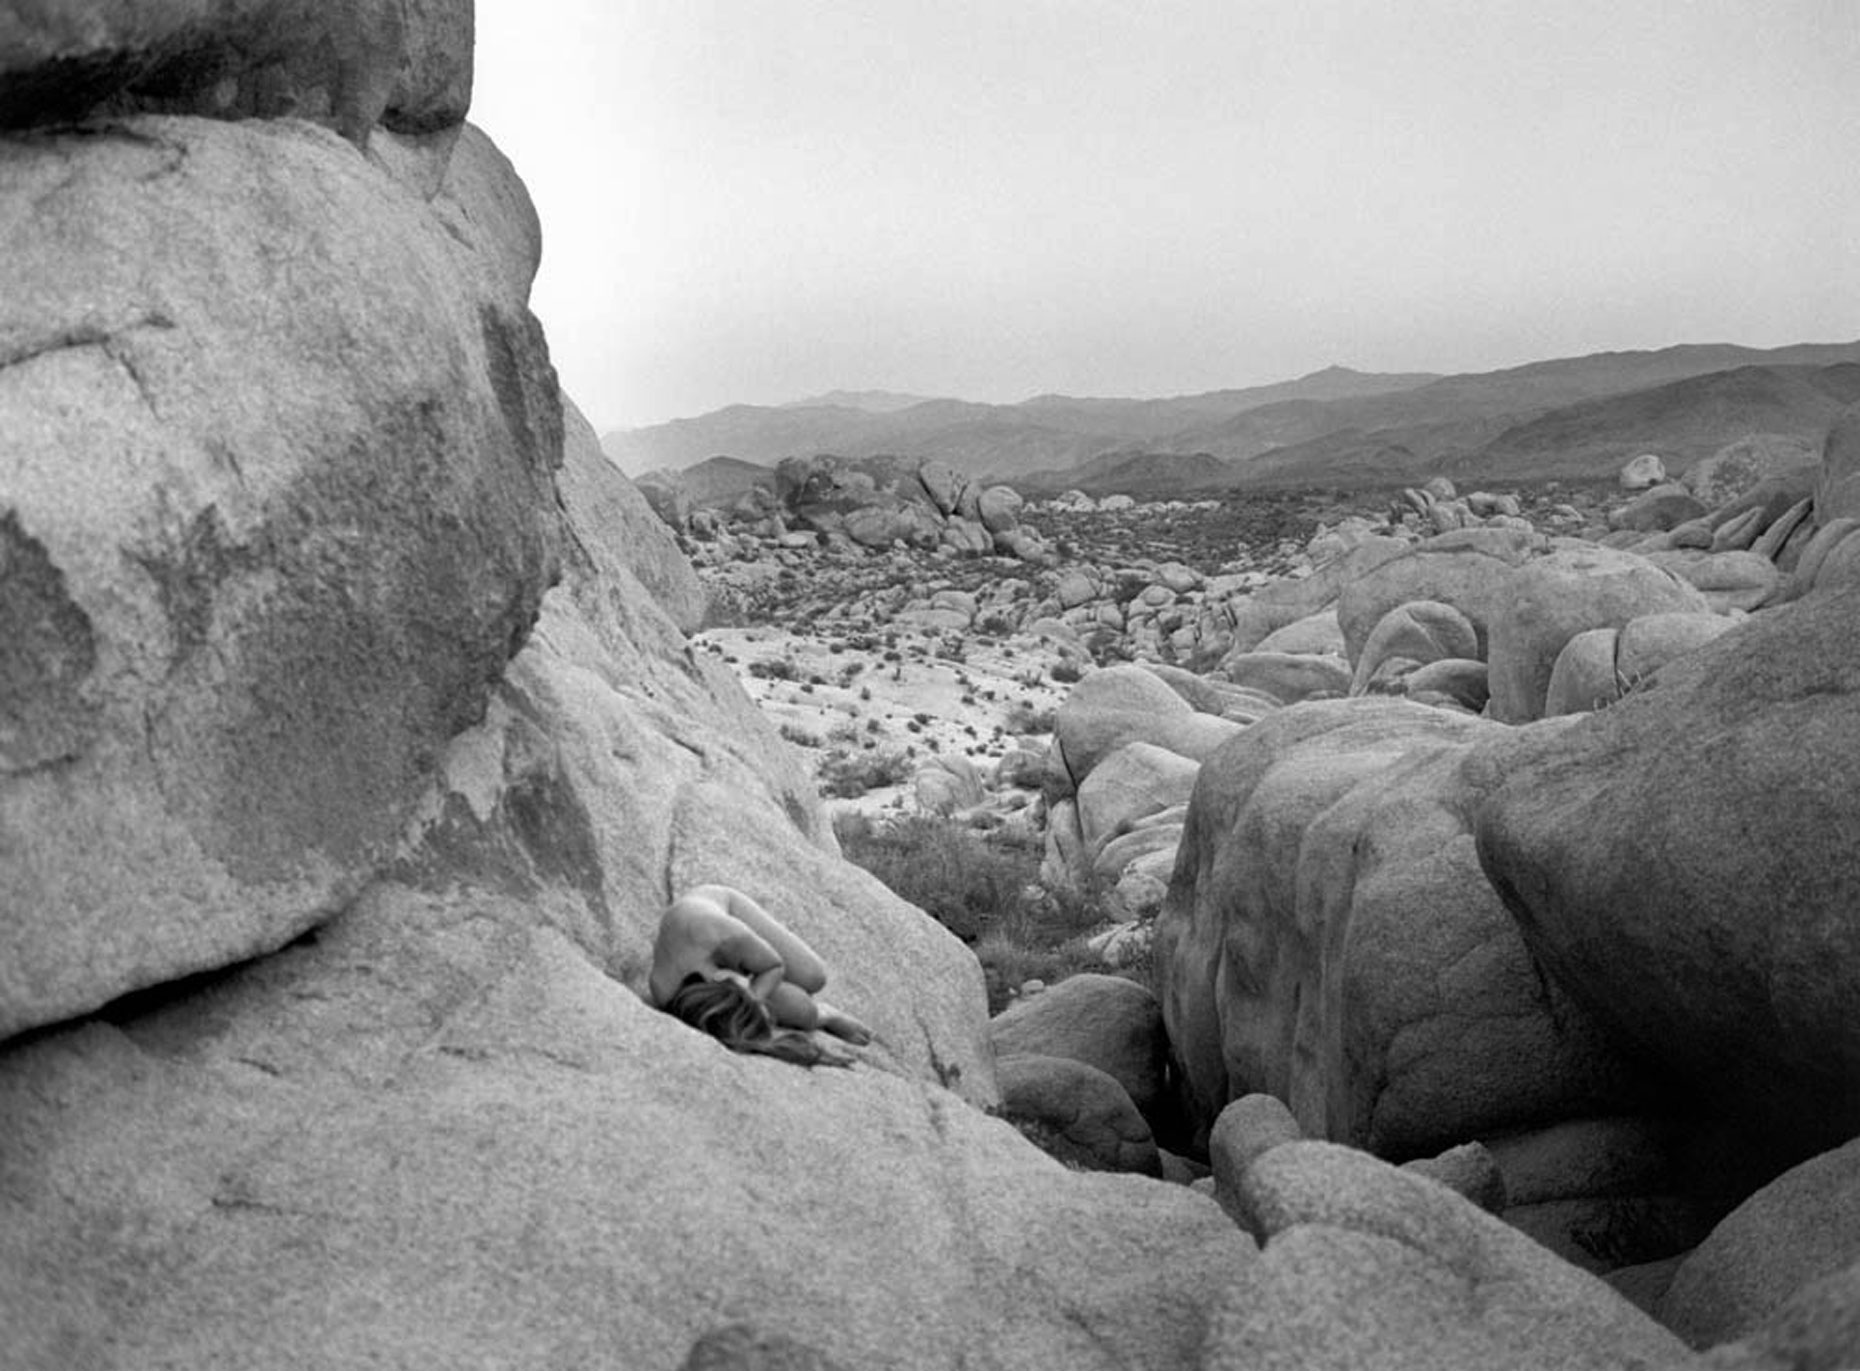 Self portrait in Joshua Tree by Francie Wong.